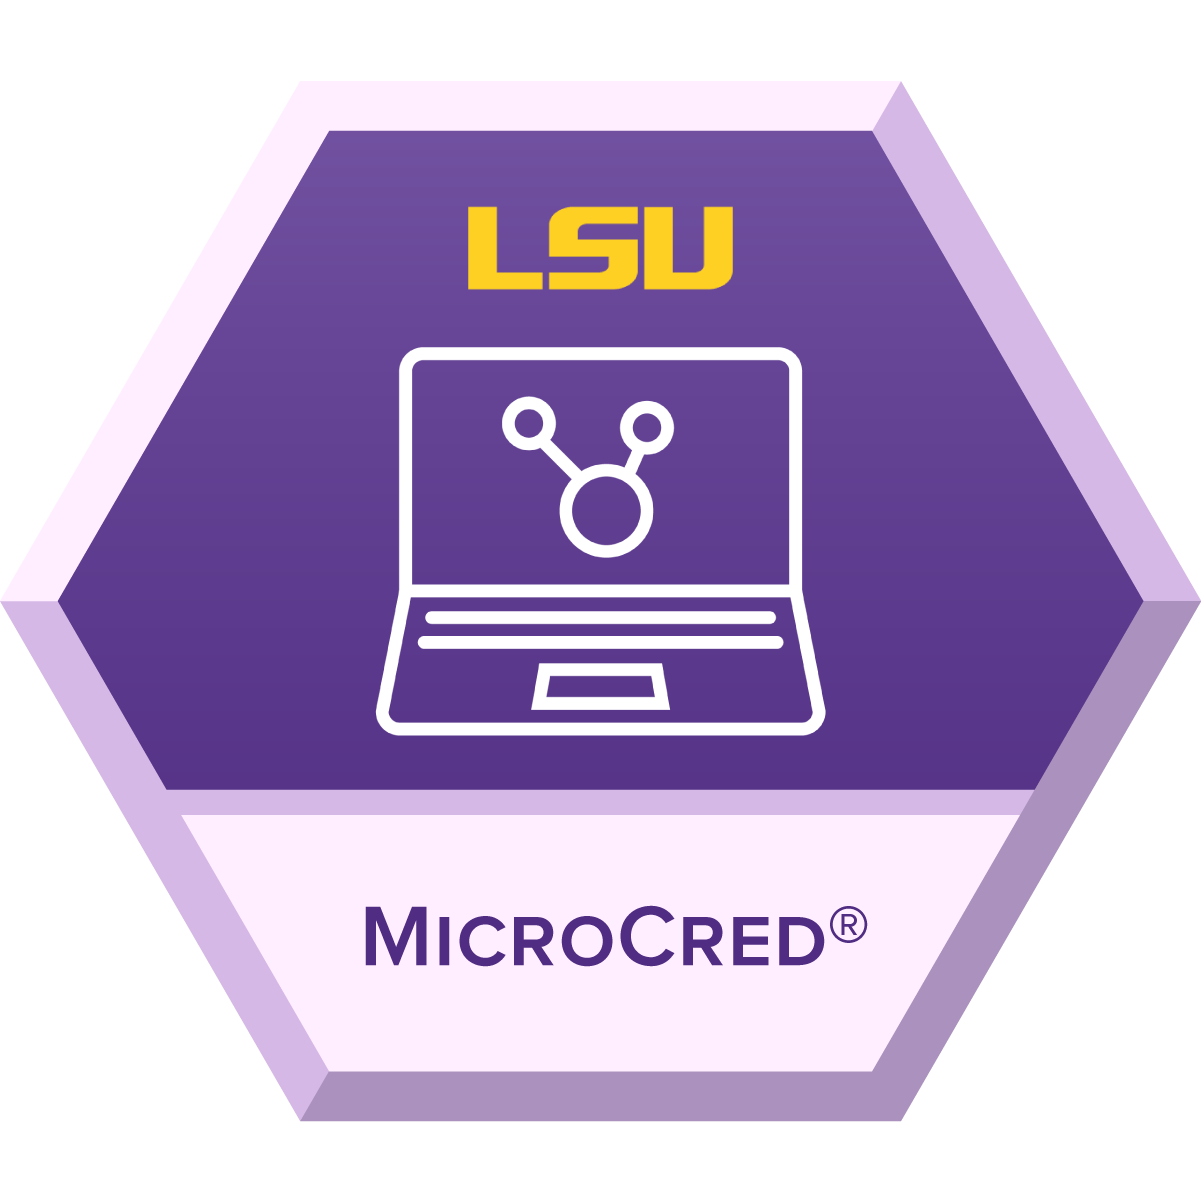 LSU Online Microcred badge